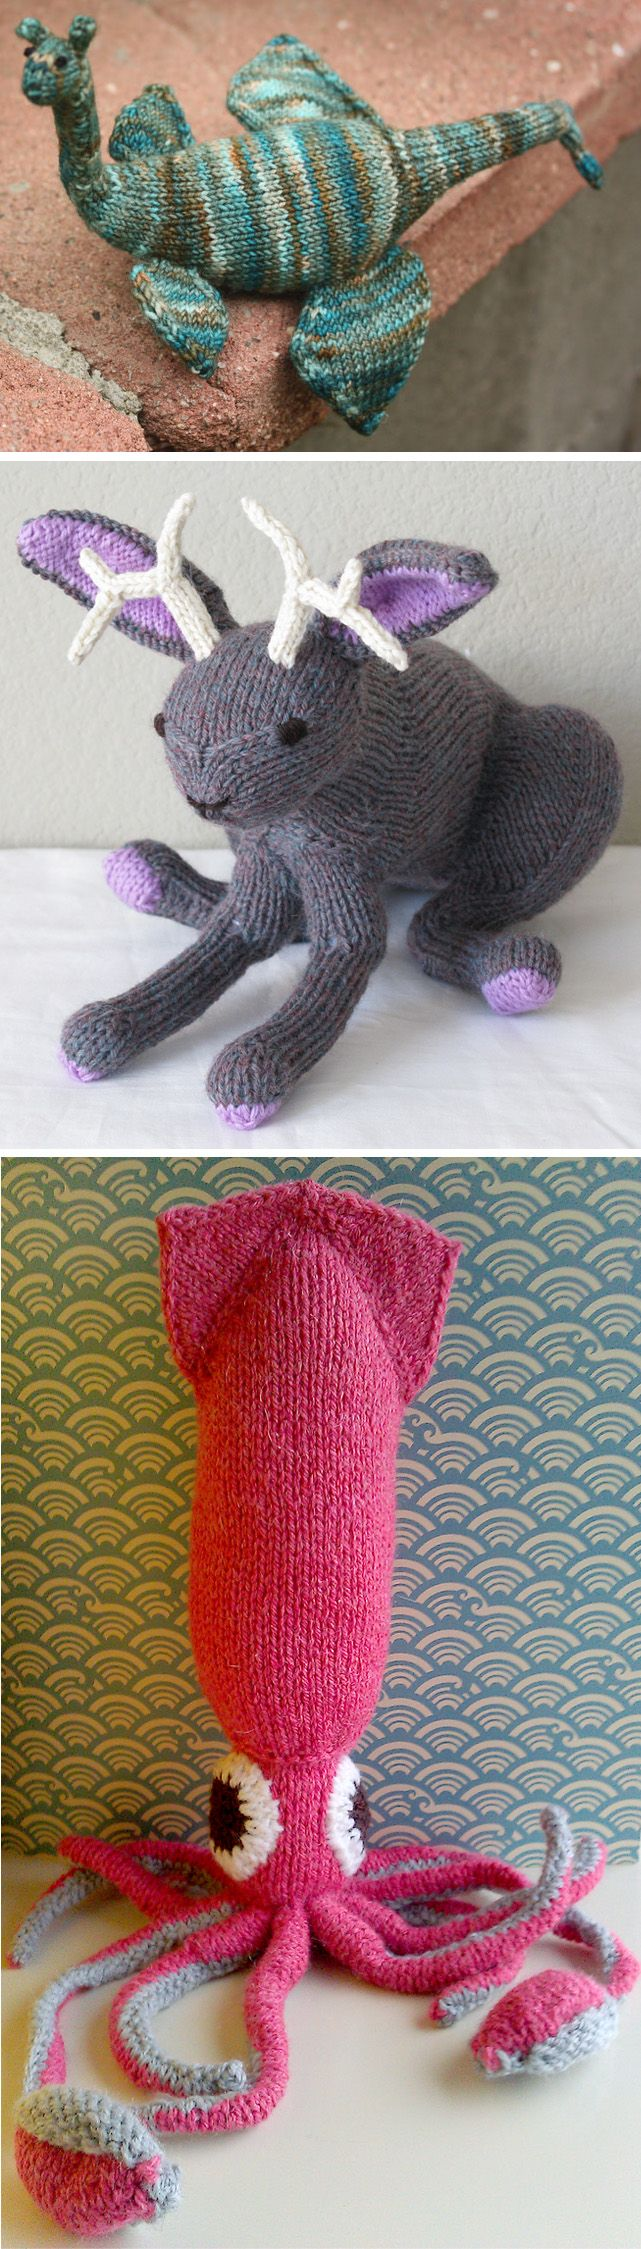 "Knitting Patterns for Loch Ness Monster, Jackalope, and Kraken - These legendary animal toys are included in the book Amigurumi Knits: Patterns for 20 Cute Mini Knits by Hansi Singh. Sizes depend on yarn weight. Nessie is about 15 inches long in worsted according to some Ravelrers. The hare with antlers Jackalope measures nearly 12"" from tail to nose. The giant squid Kraken appears to be about 12 inches tall. Pictured projects by oboegoddess, jessdhill, and Cherrytreeknits."